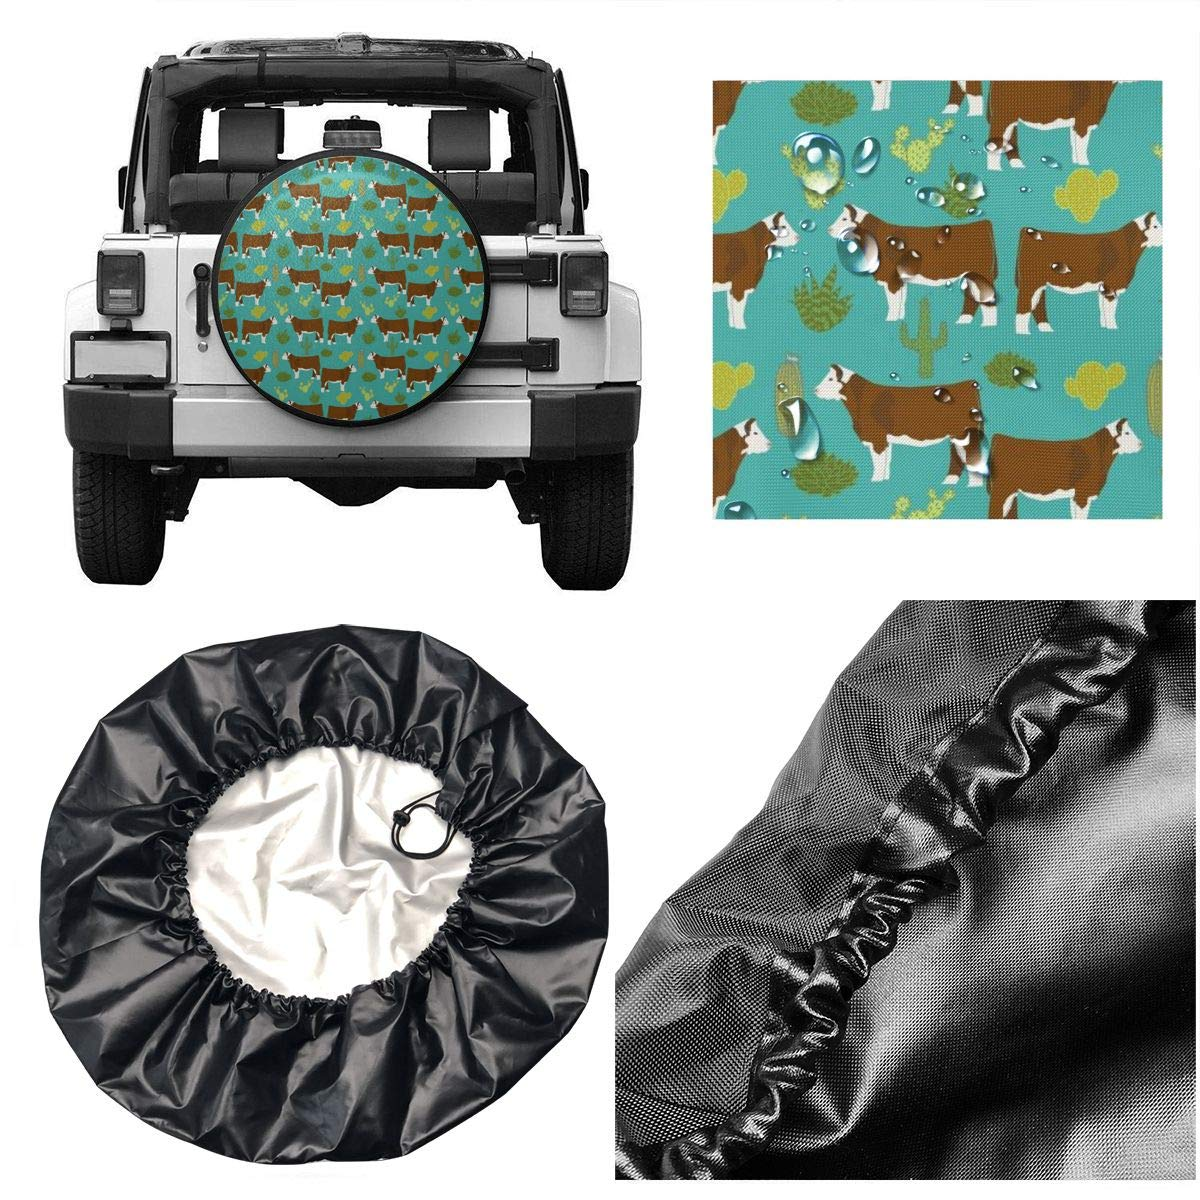 TRENDCAT Tire Cover Hereford Cow Canvas Potable Polyester Universal Spare Wheel Tire Cover Wheel Covers for Jeep Trailer RV SUV Truck Camper Travel Trailer Accessories 14,15,16,17 Inch